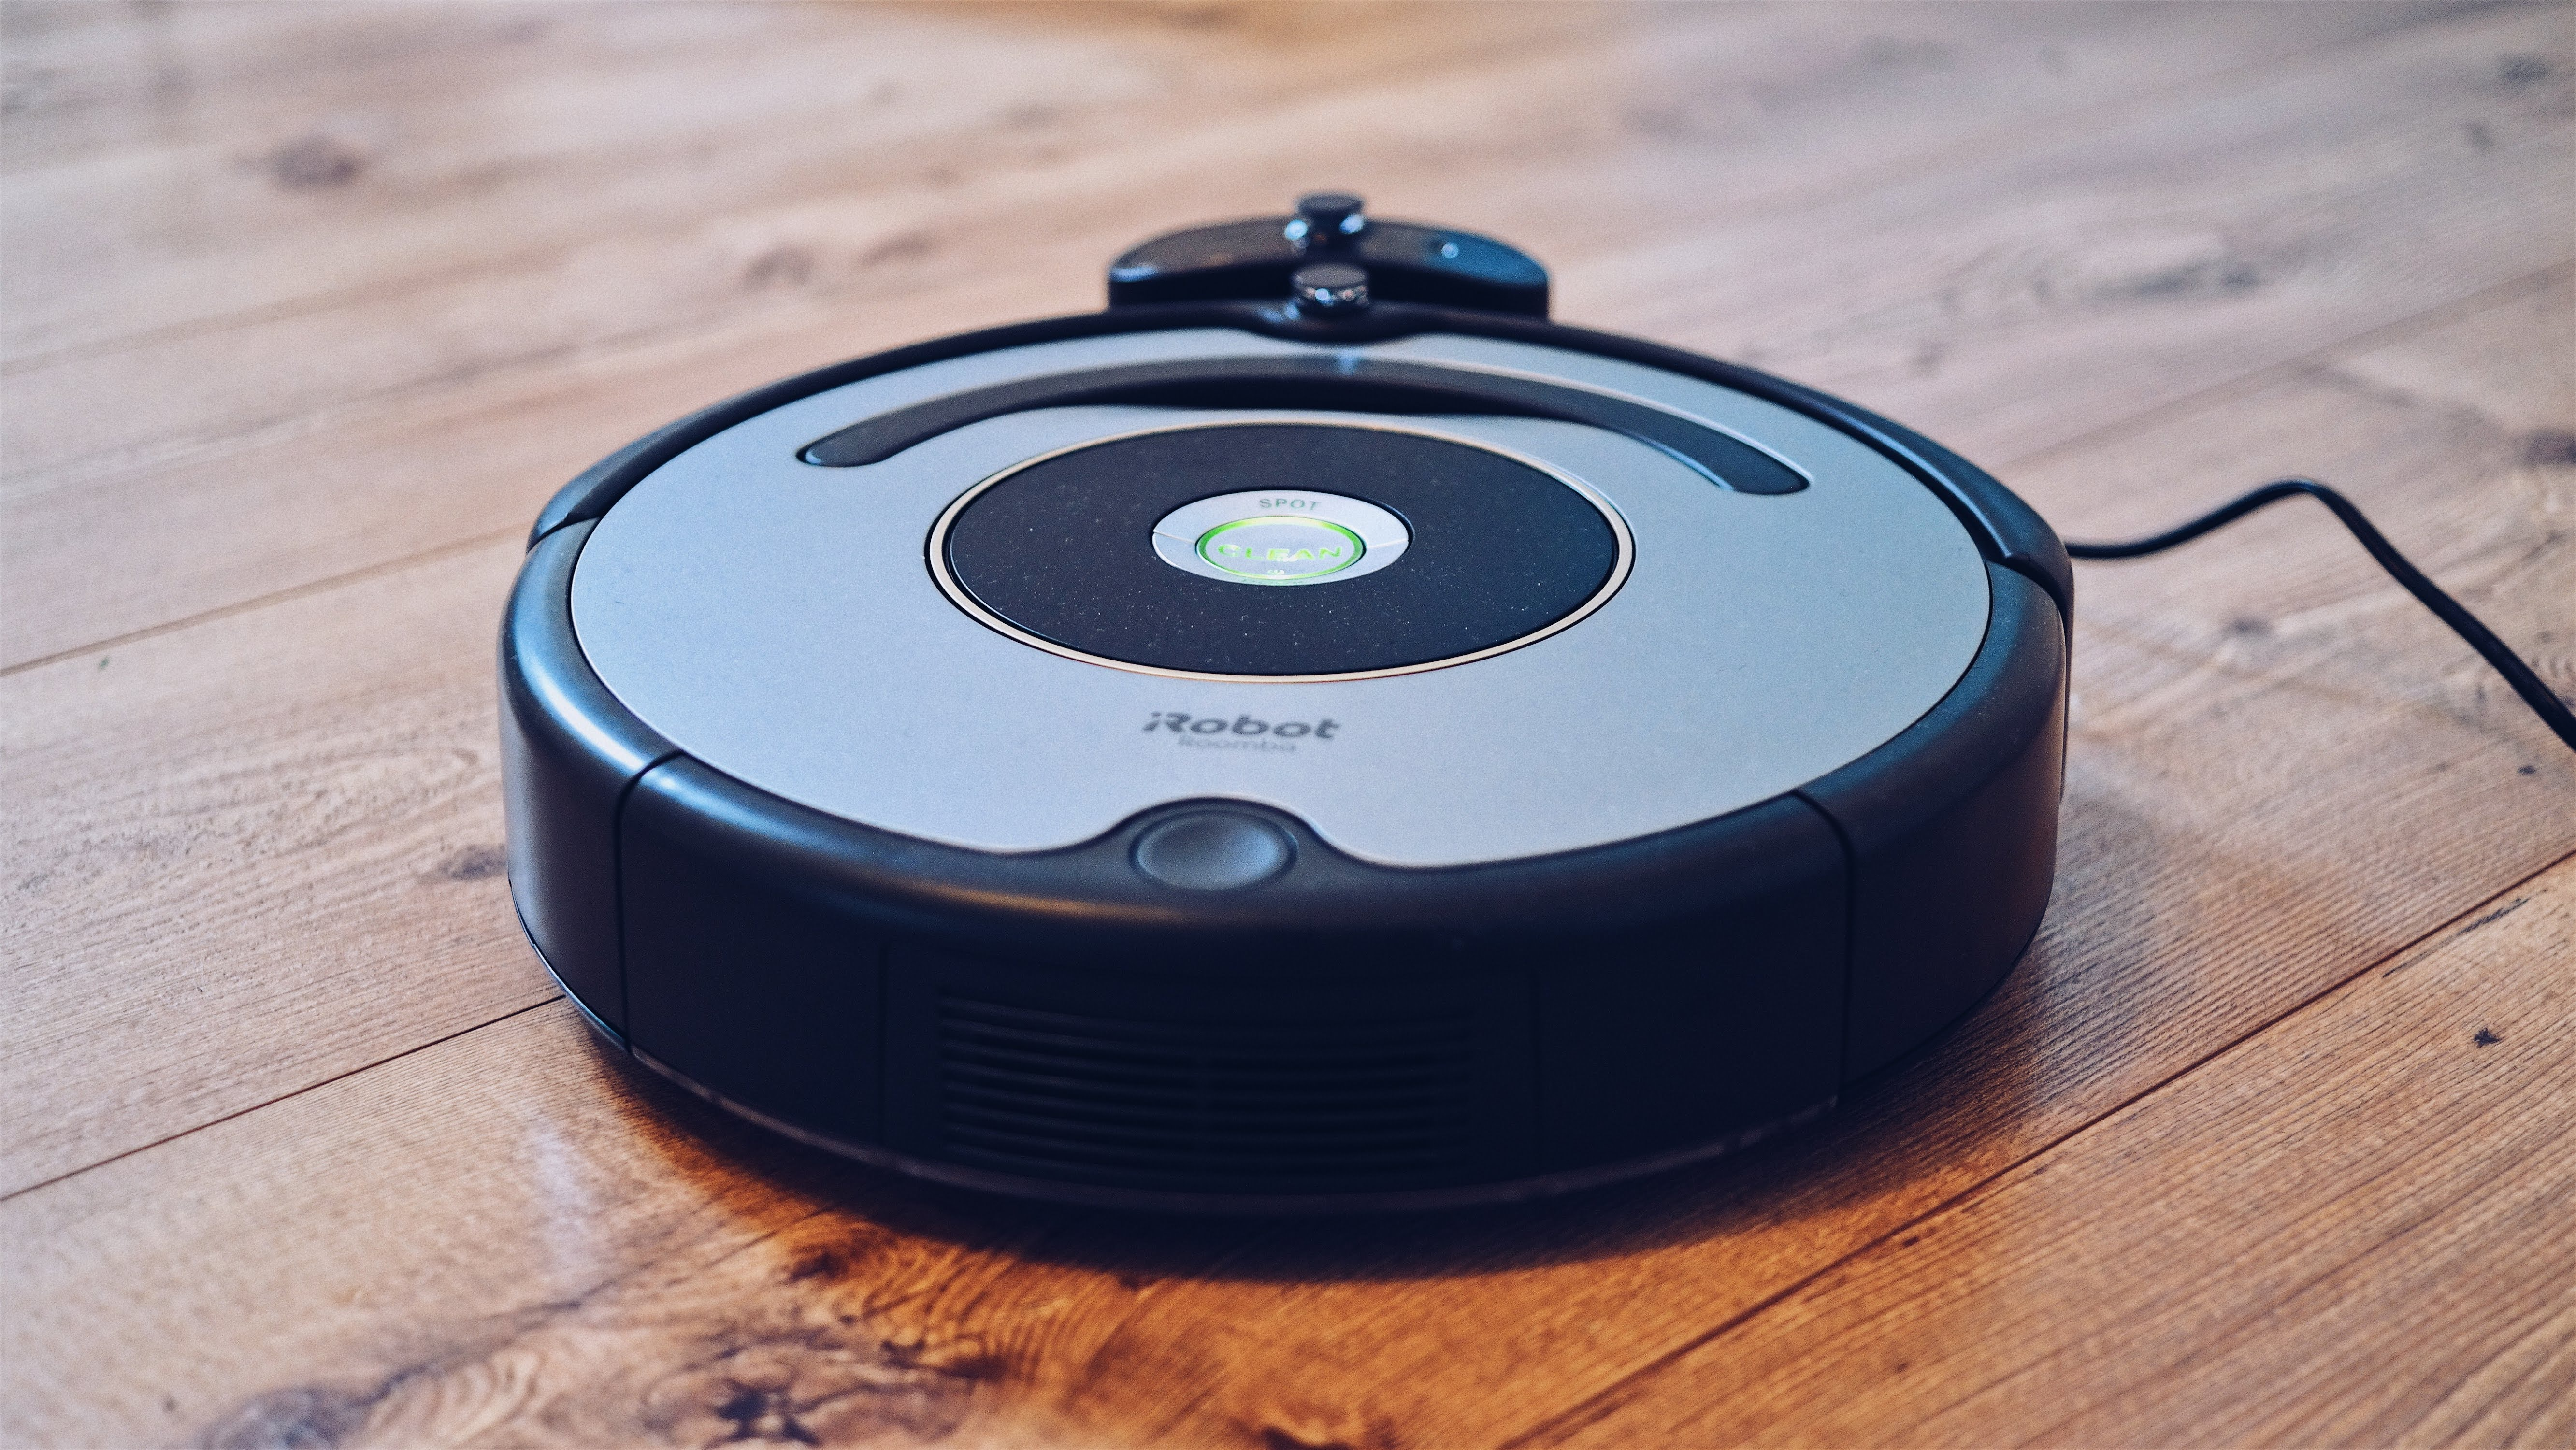 Top 5 Best Robot Vacuum For Pet Hair How To Choose In